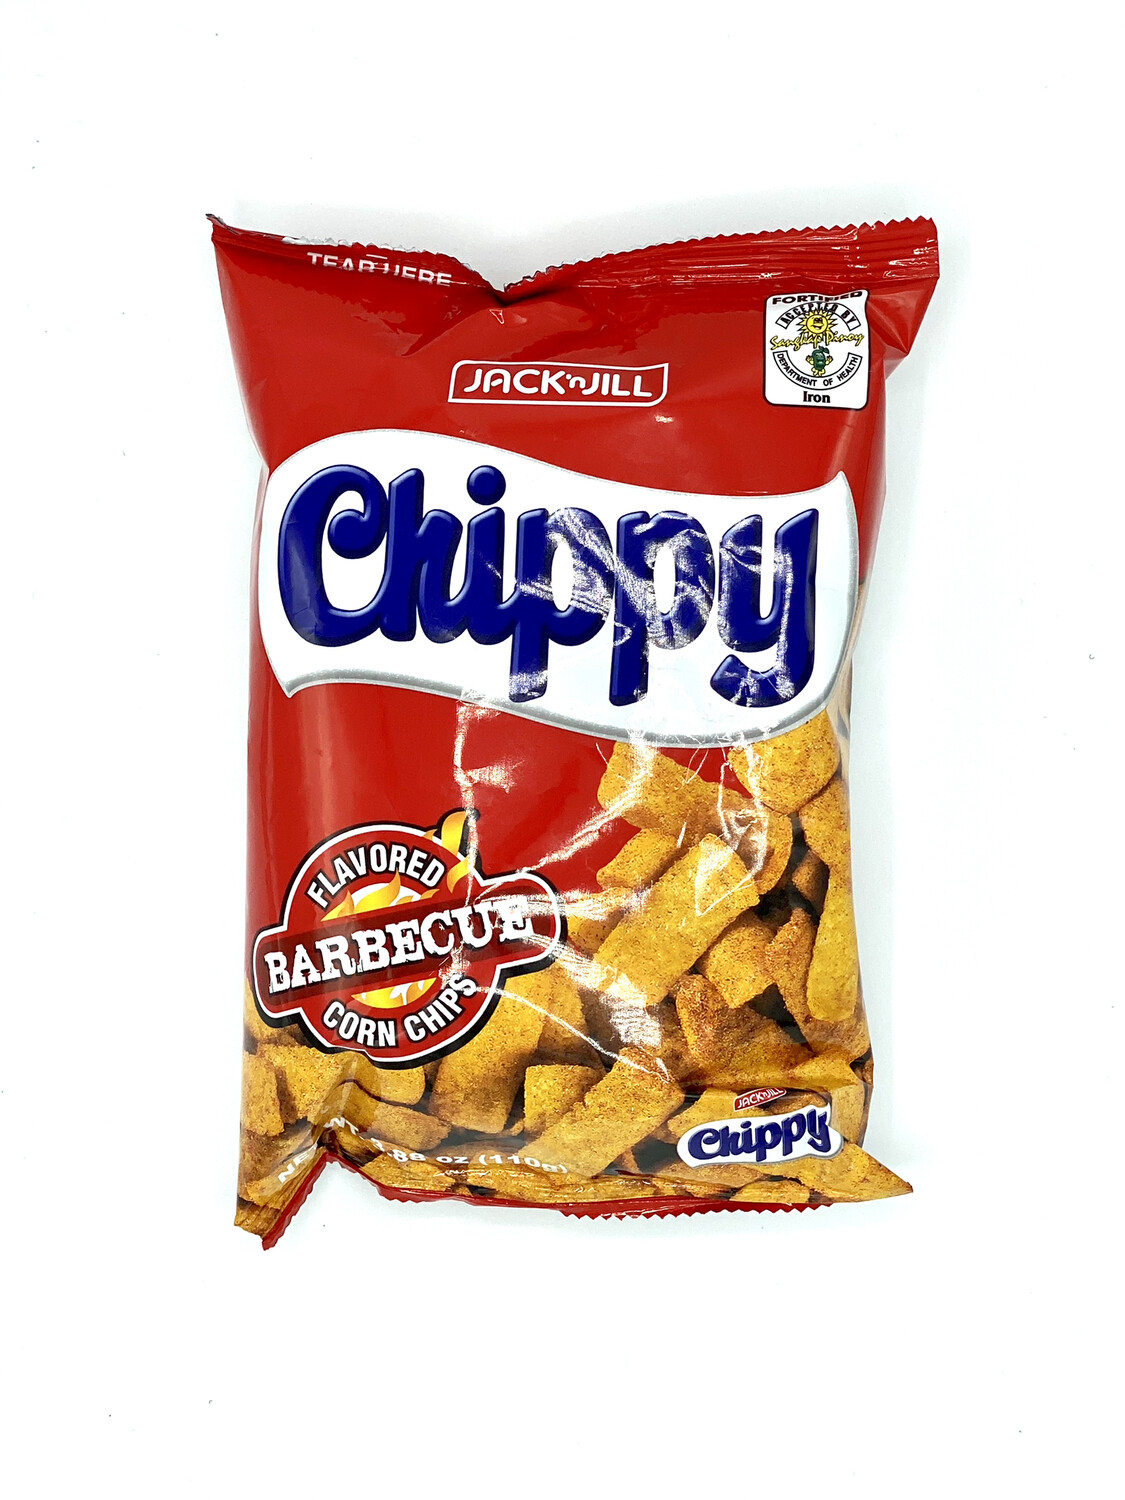 Jack 'n Jill - Chippy Barbecue flavored corn chips - 100 GRAMS